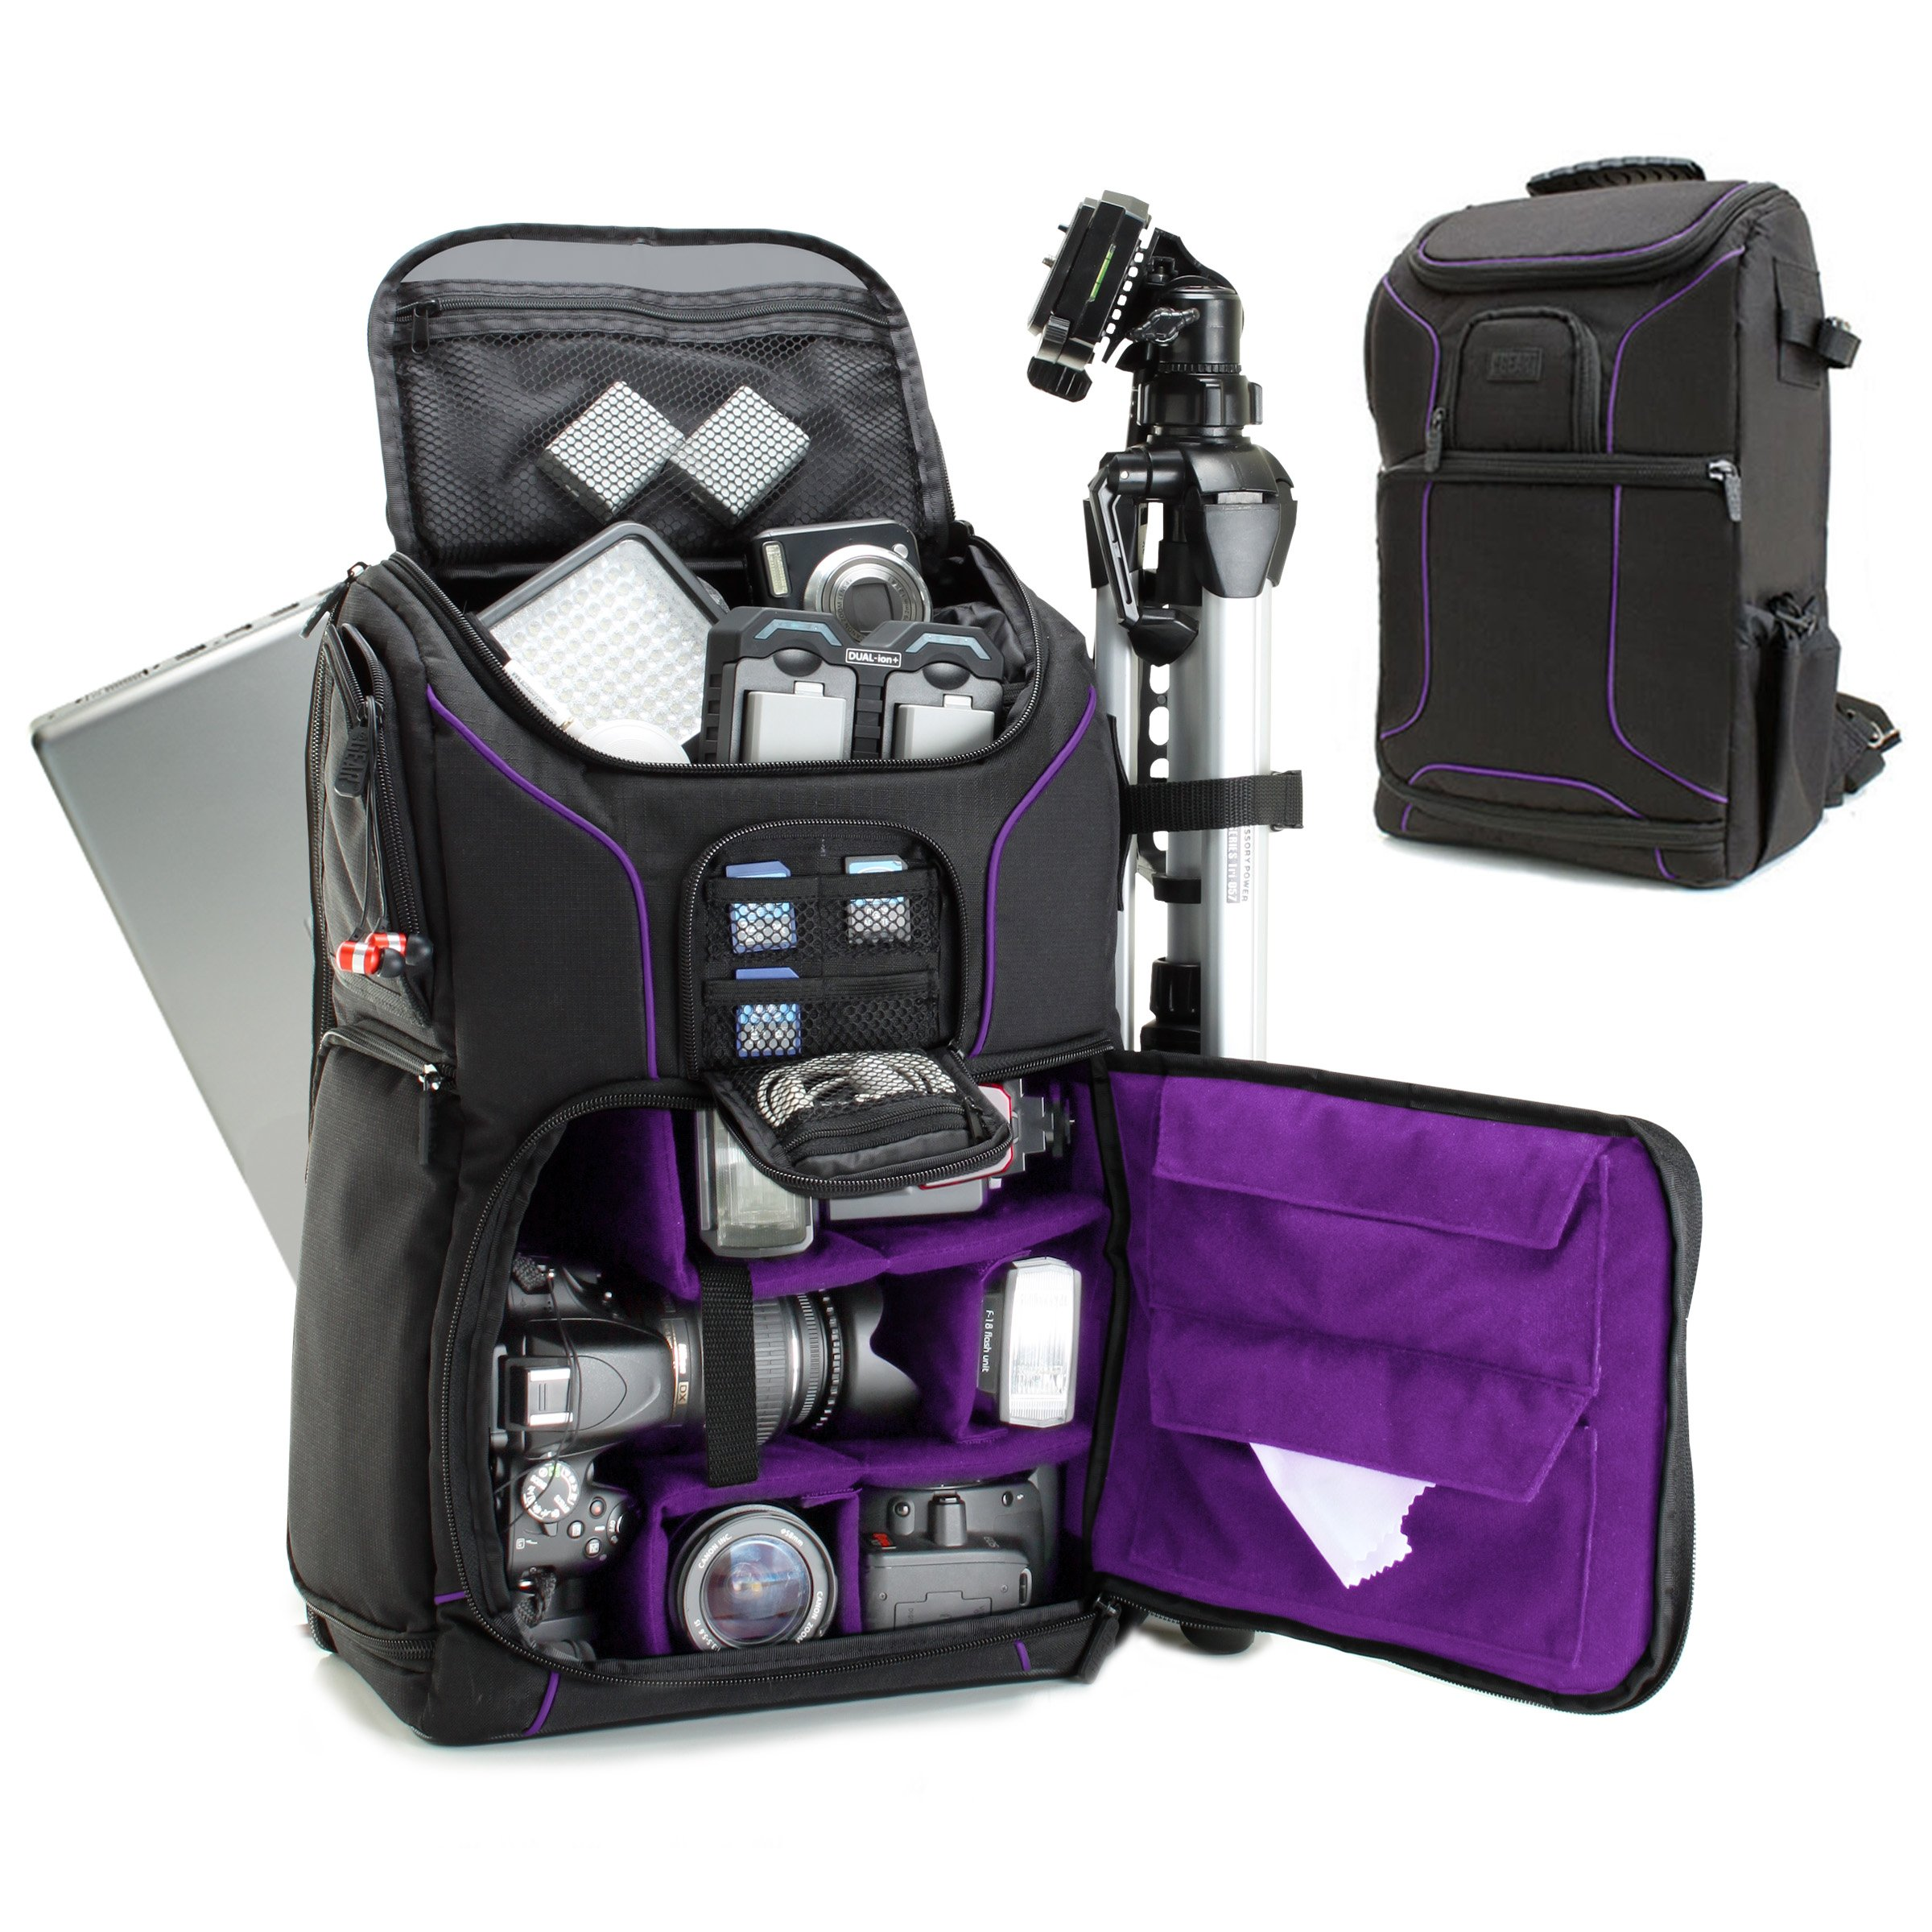 Digital SLR Camera Backpack (Purple) with 15.6'' Laptop Compartment by USA Gear features Padded Custom Dividers , Tripod Holder , Rain Cover and Storage for DSLR Cameras by Nikon , Canon , Sony & More